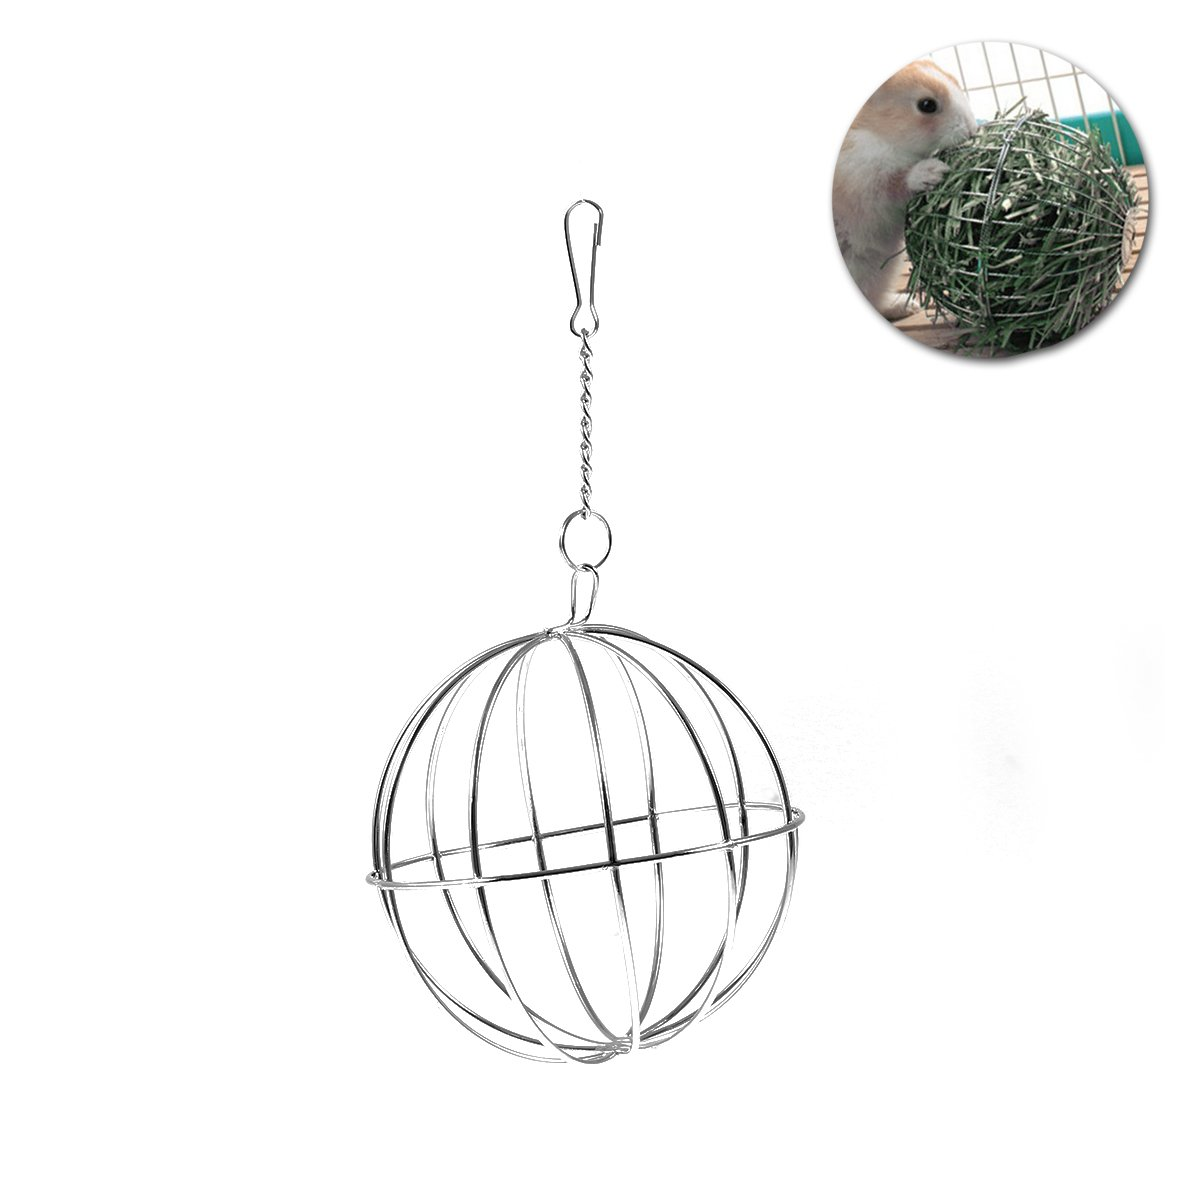 UEETEK 8cm Sphere Treat Guinea Pig Hamster Rat Rabbit Feed Dispenser Hanging Ball Toy for Pets